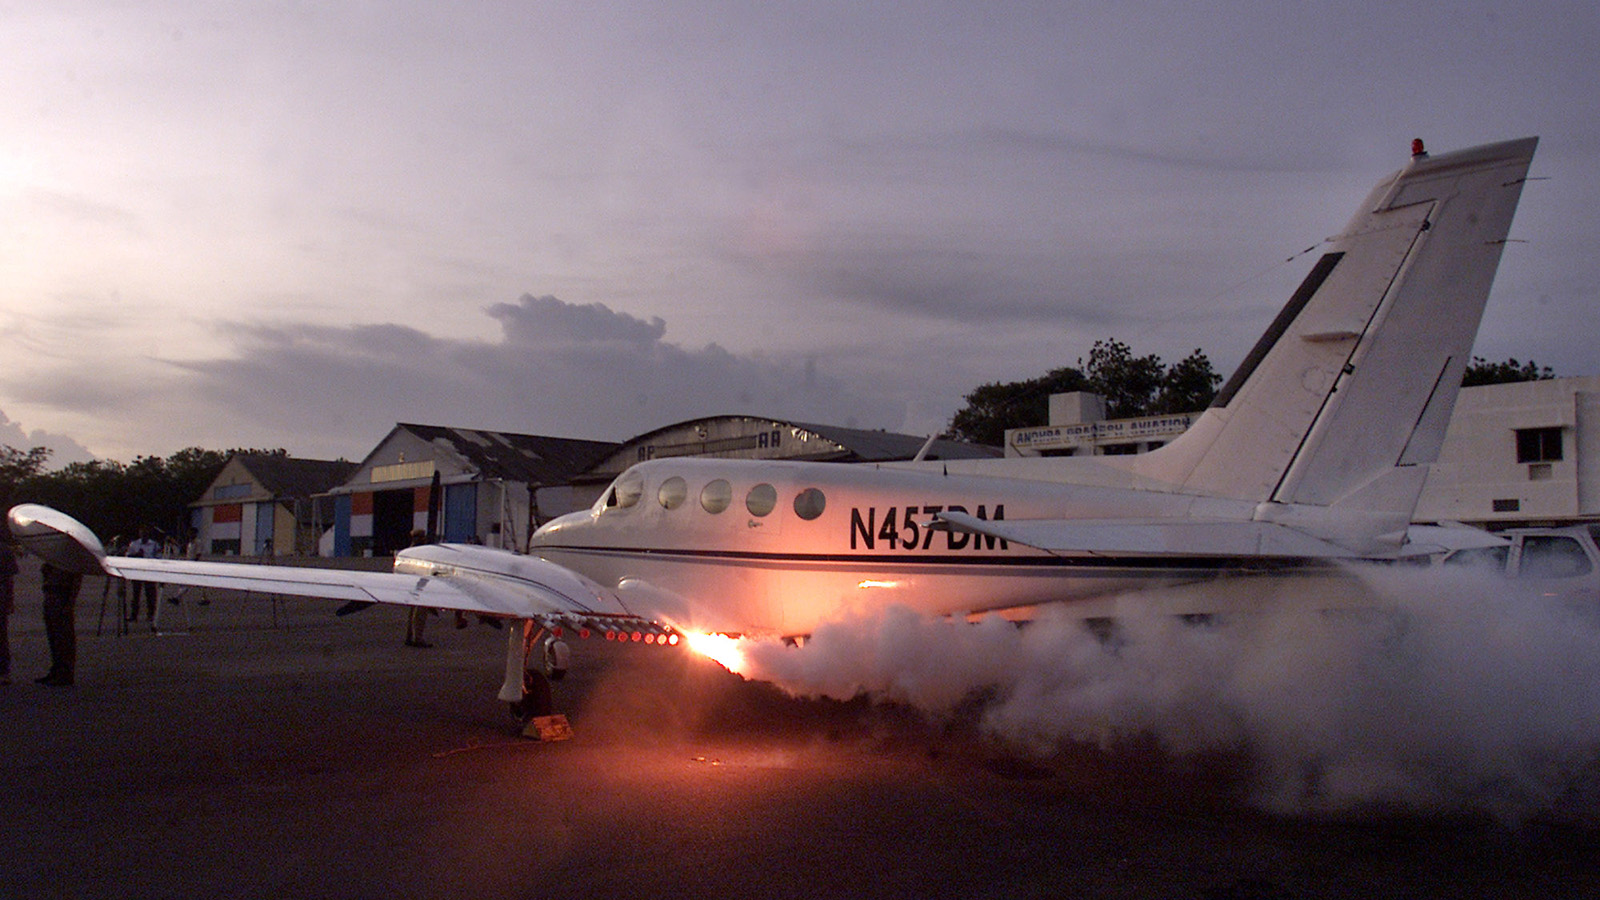 Cloud seeding flares mounted on an aircraft